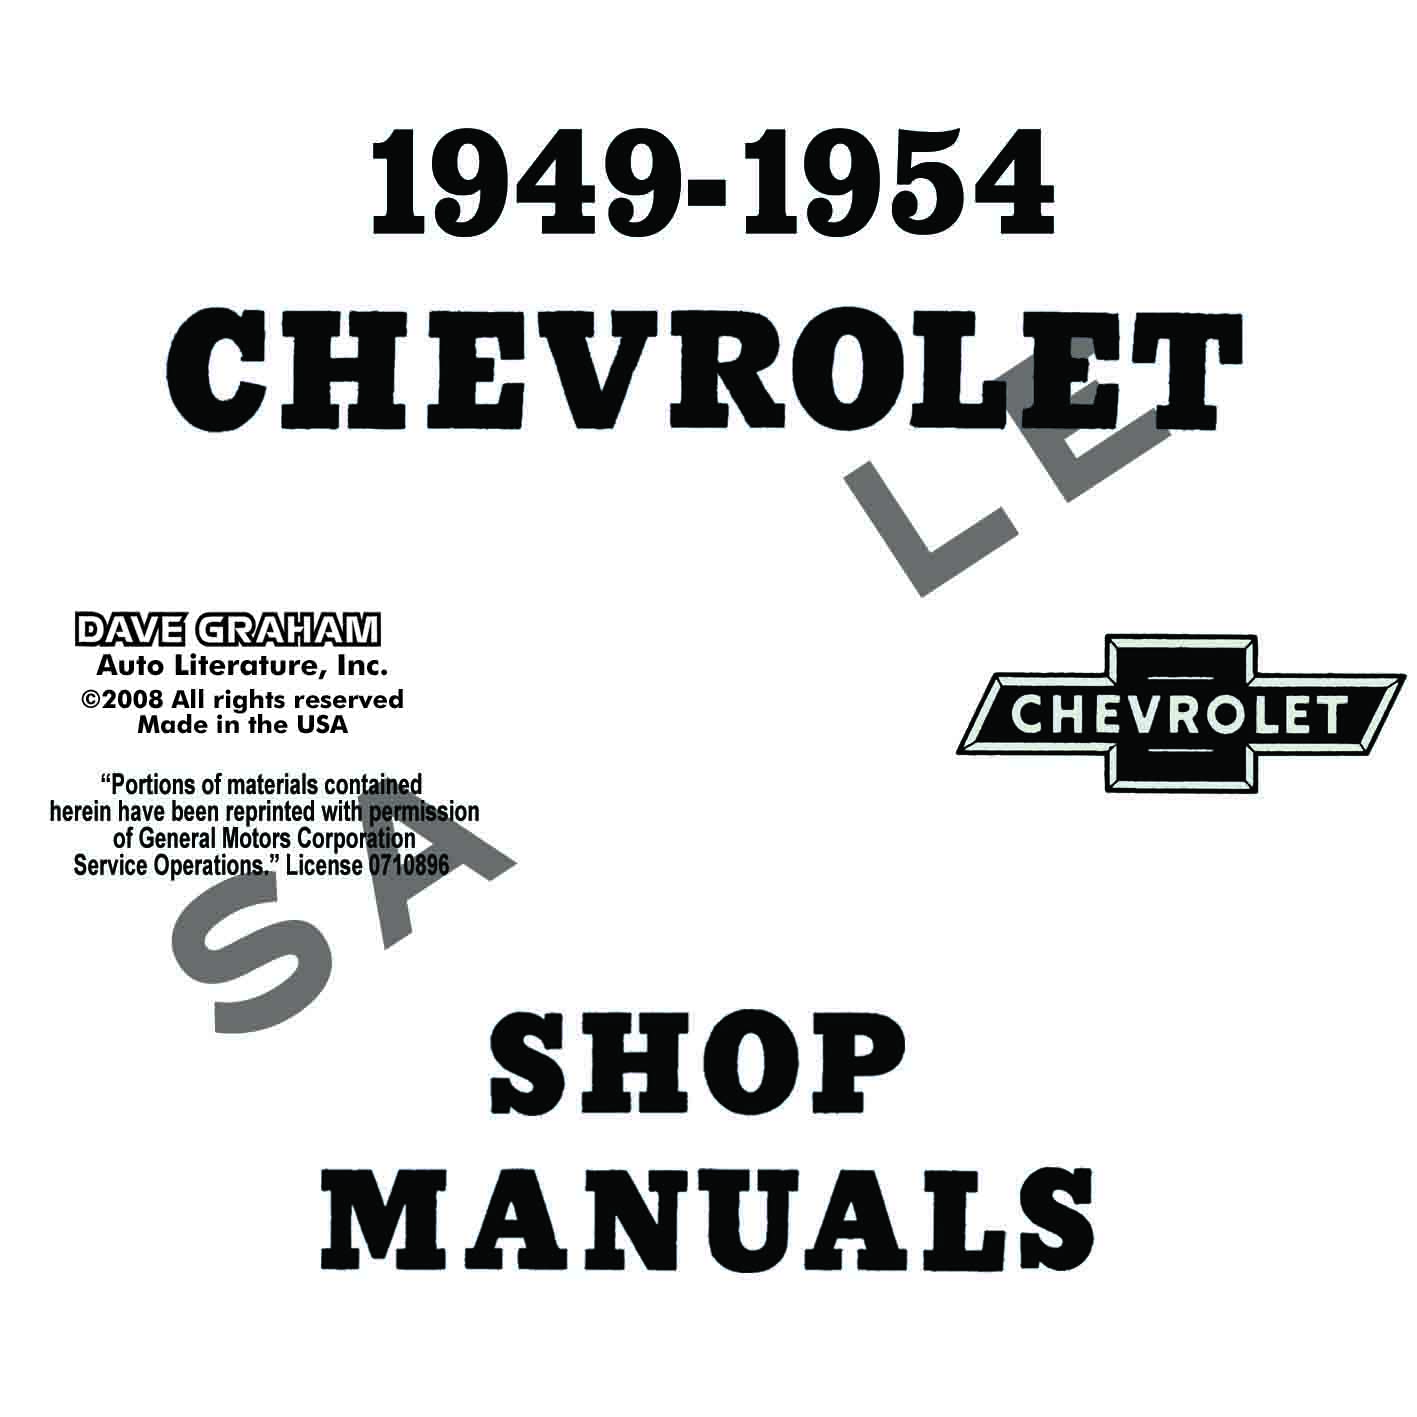 1949, 1950, 1951, 1952, 1953, 1954 CHEVROLET REPAIR MANUAL